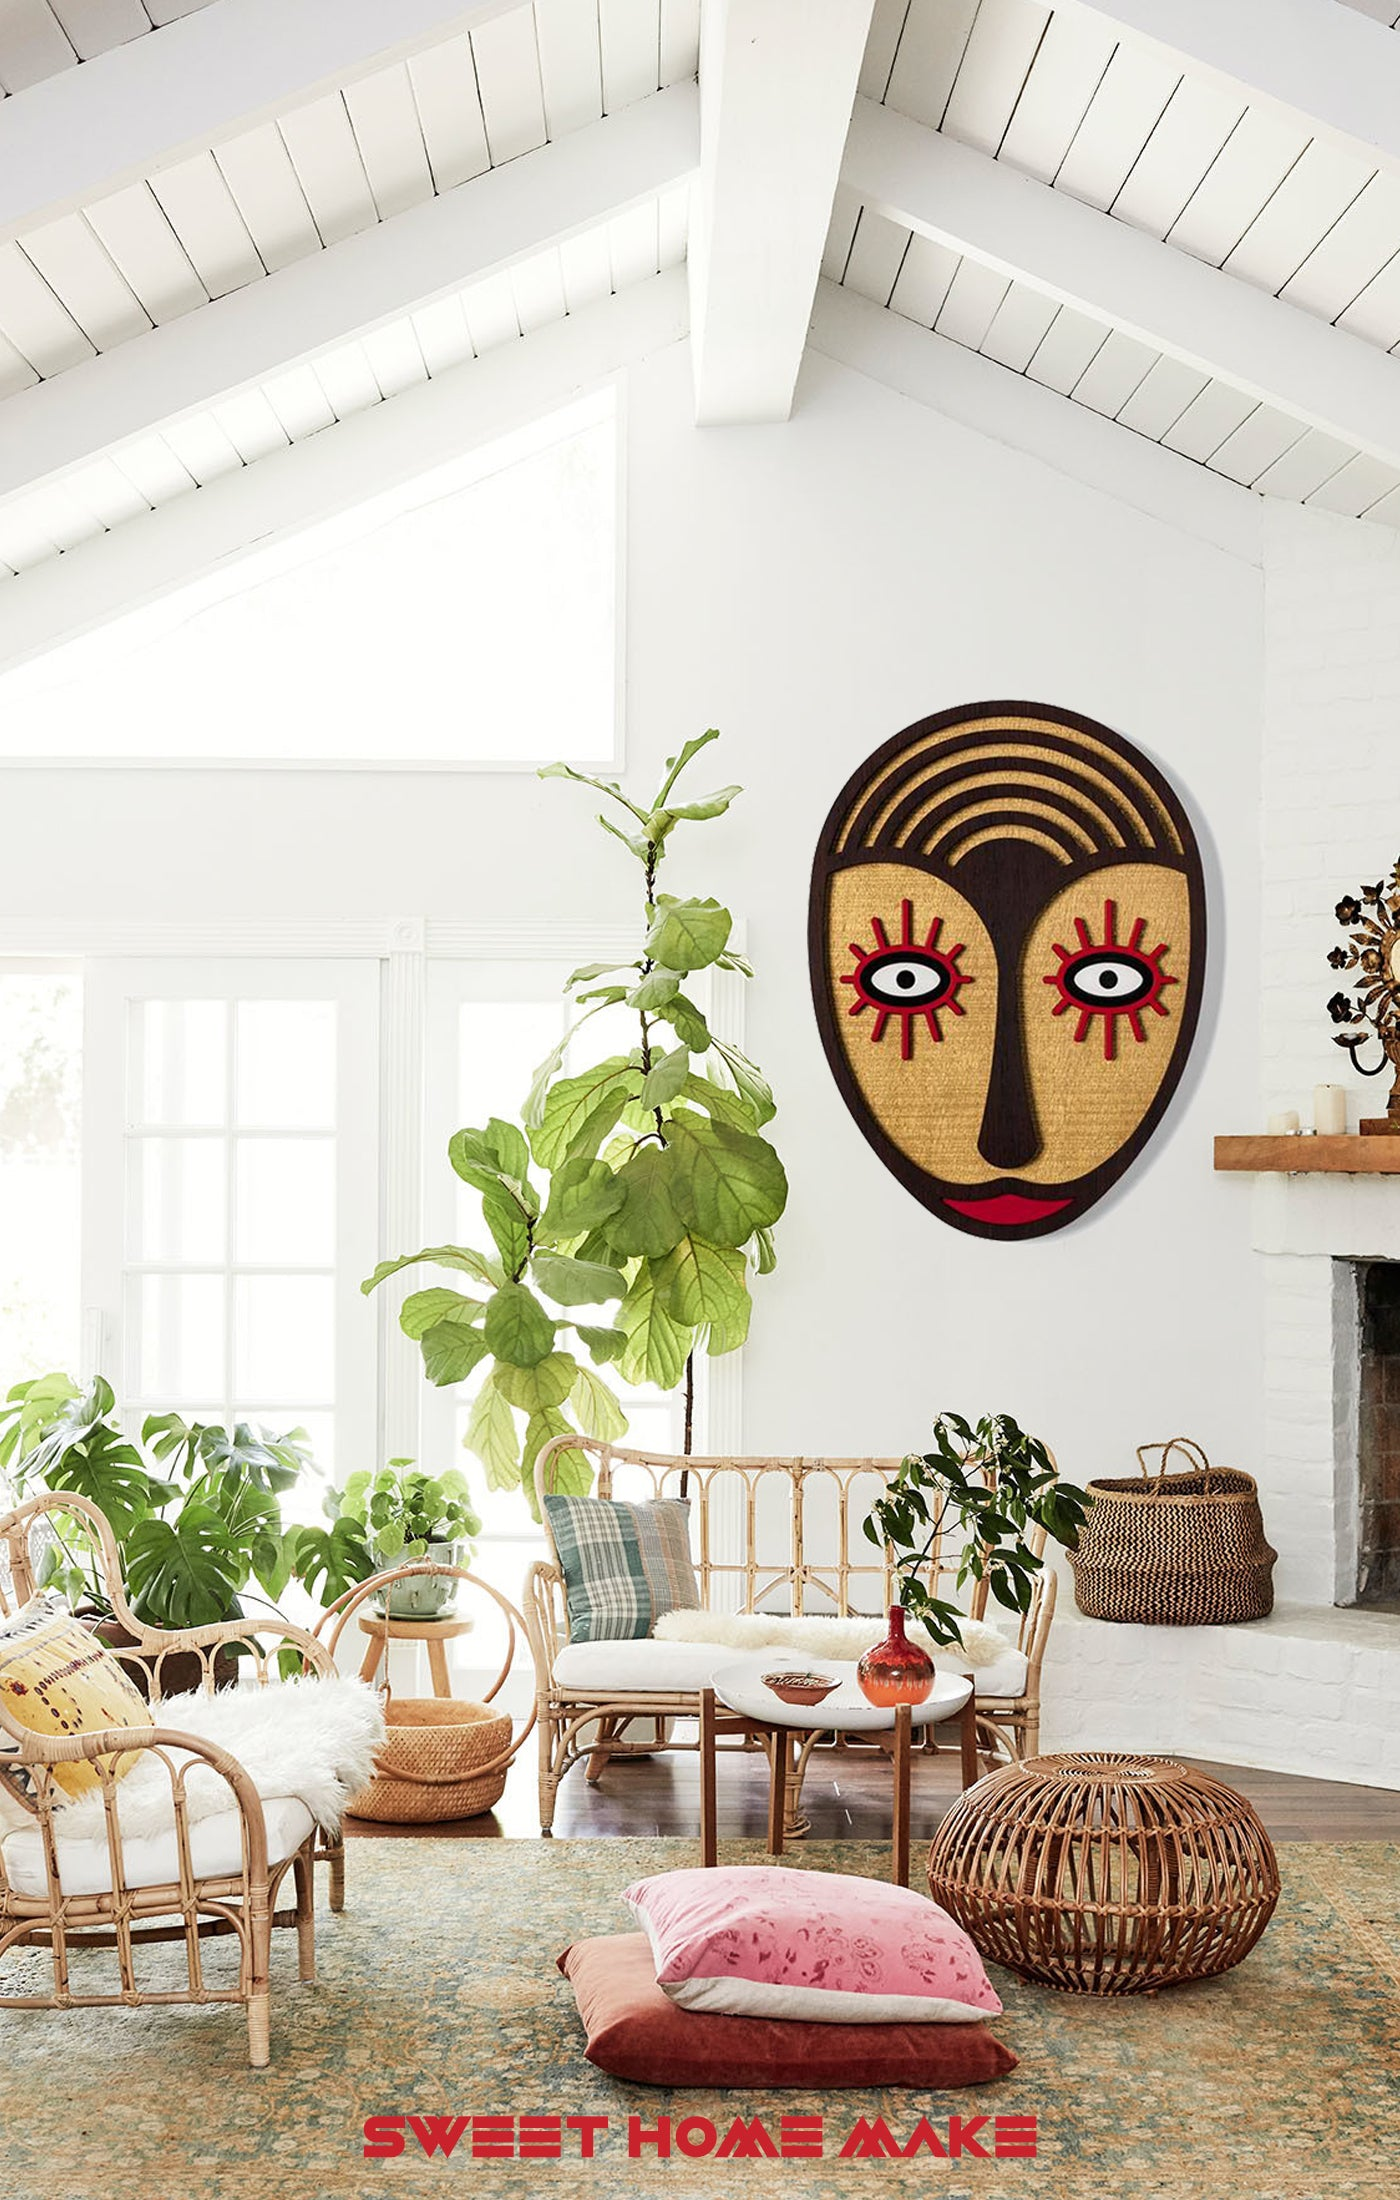 Boho and Chic Wall Art at the Boho Living Room Wall Decor